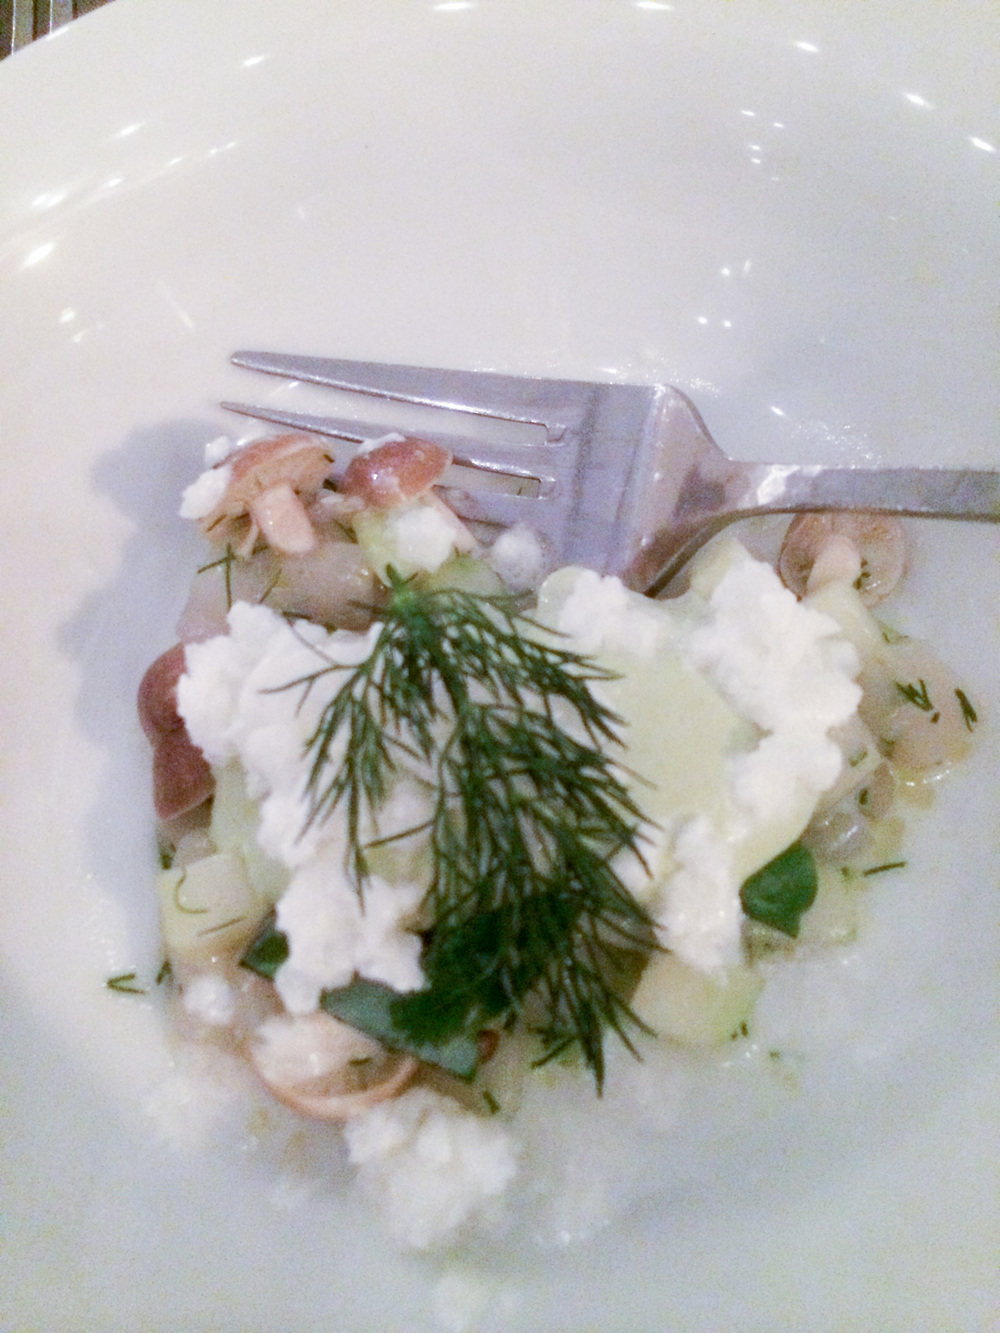 Scallop Tartare with Iced Eucalyptus